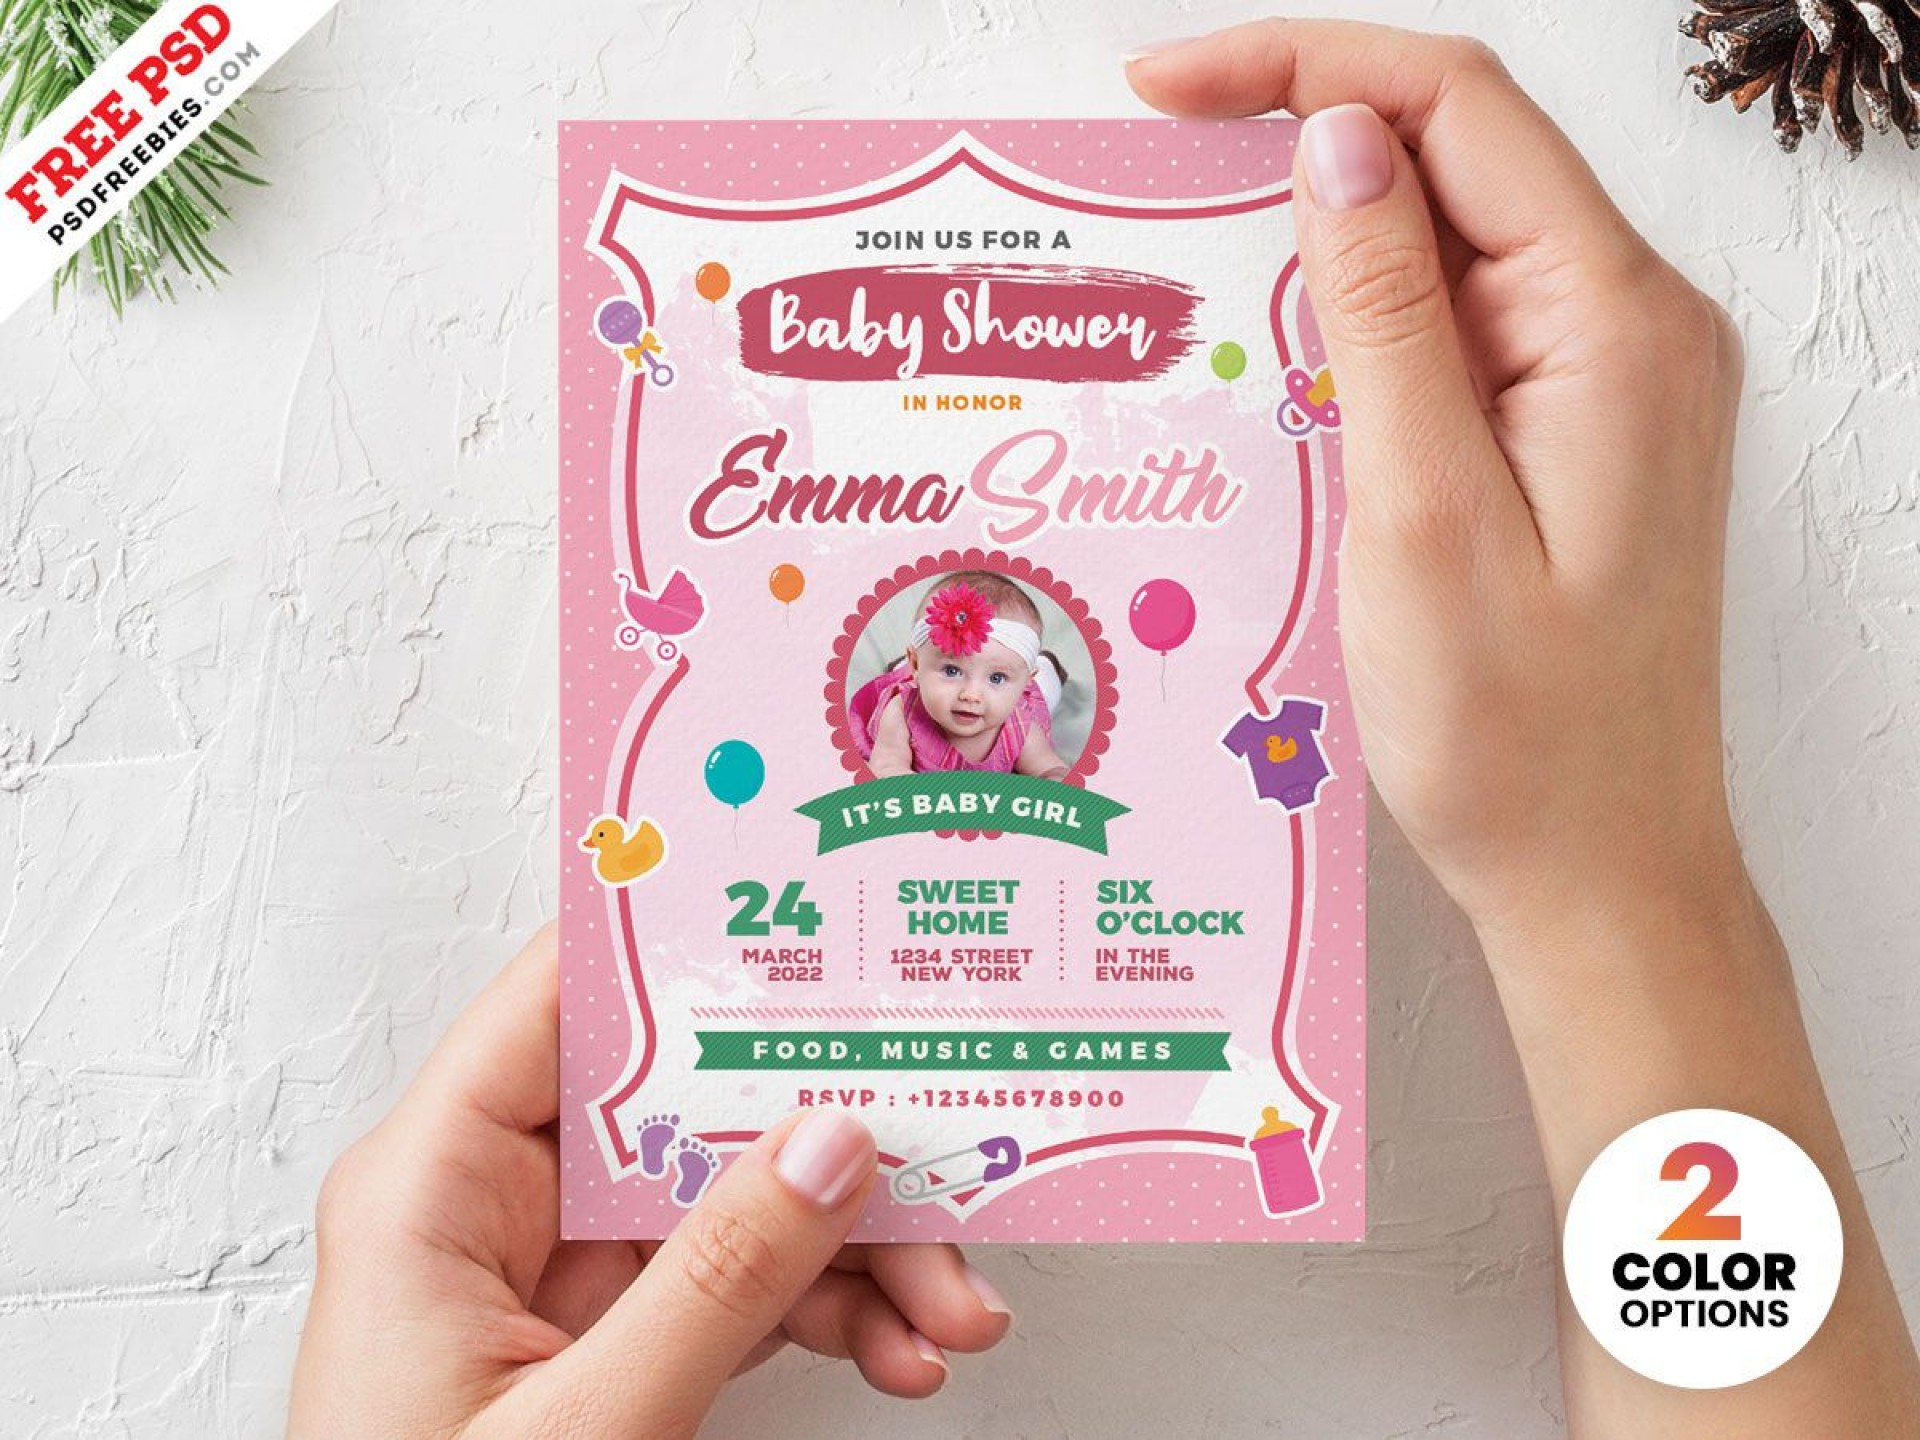 002 Best Baby Shower Invitation Card Template Free Download Idea  Indian1920